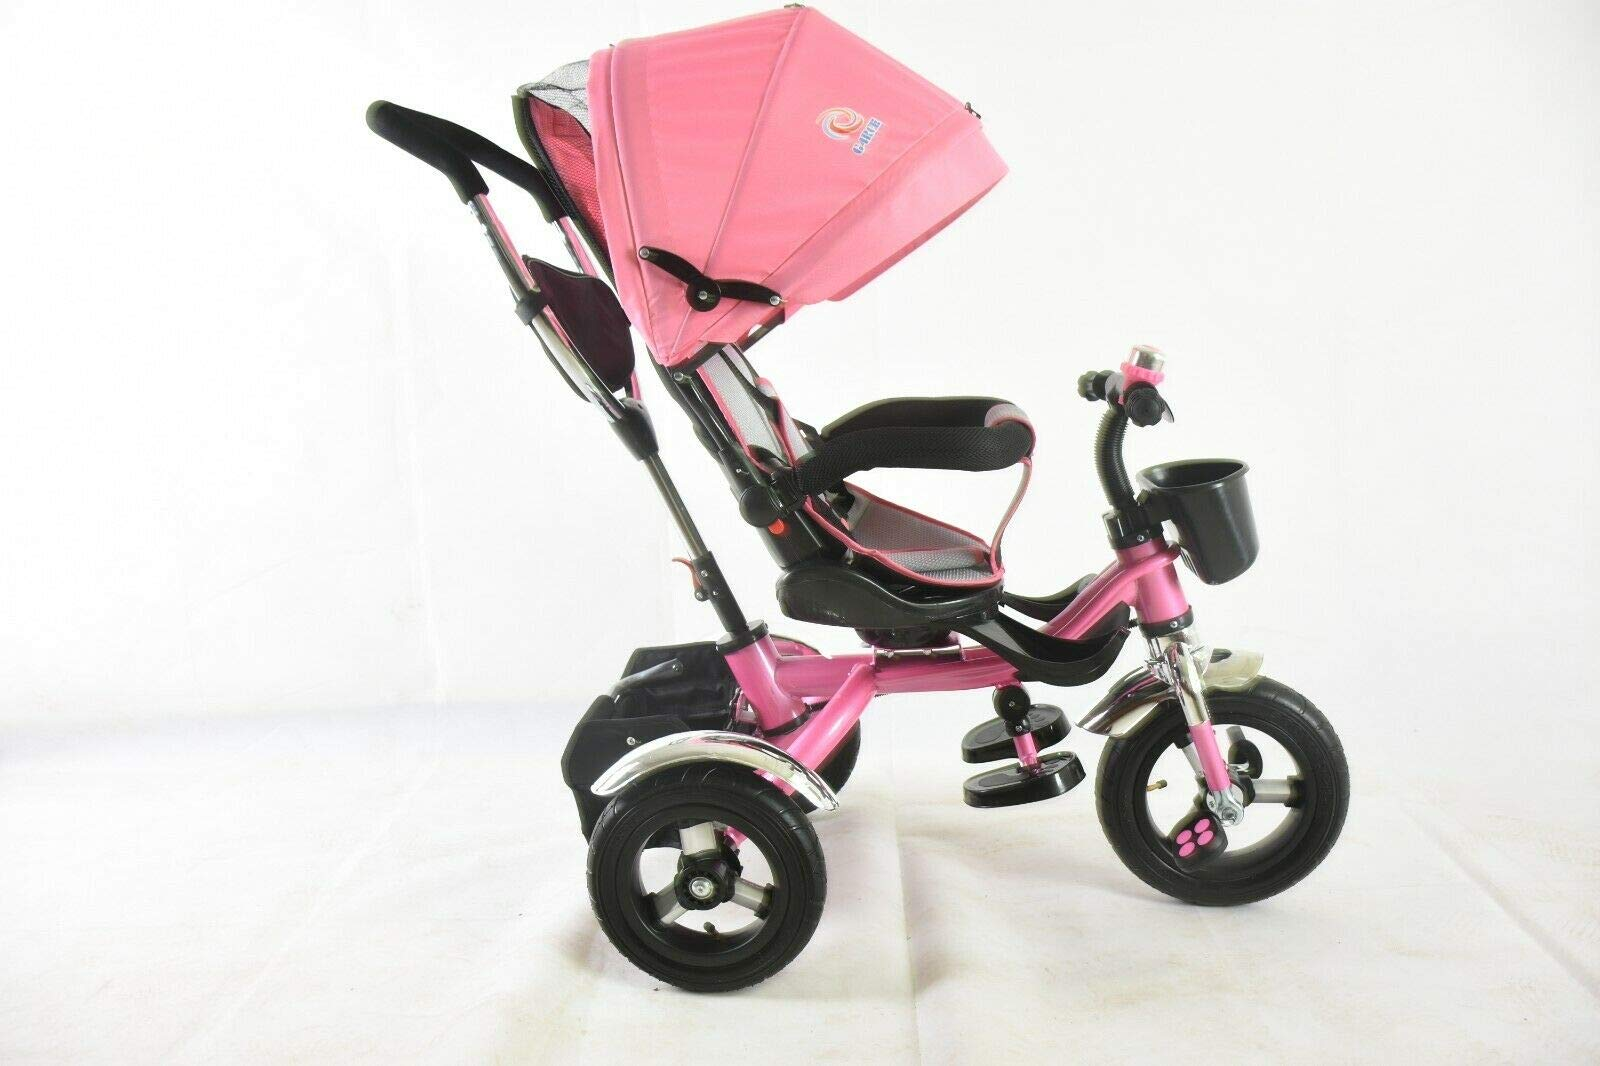 Trike Tricycle Stroller Buggy Wheel Ride Push Rain Cover Rubber Tyres 4 in 1 System (Pink) Generic Removable Leg rest for kids to feet up. Adjustable and removable parent handle or control bar. Plastic seat with removable padded cushion and lap seat belt to keep your child safe. 2